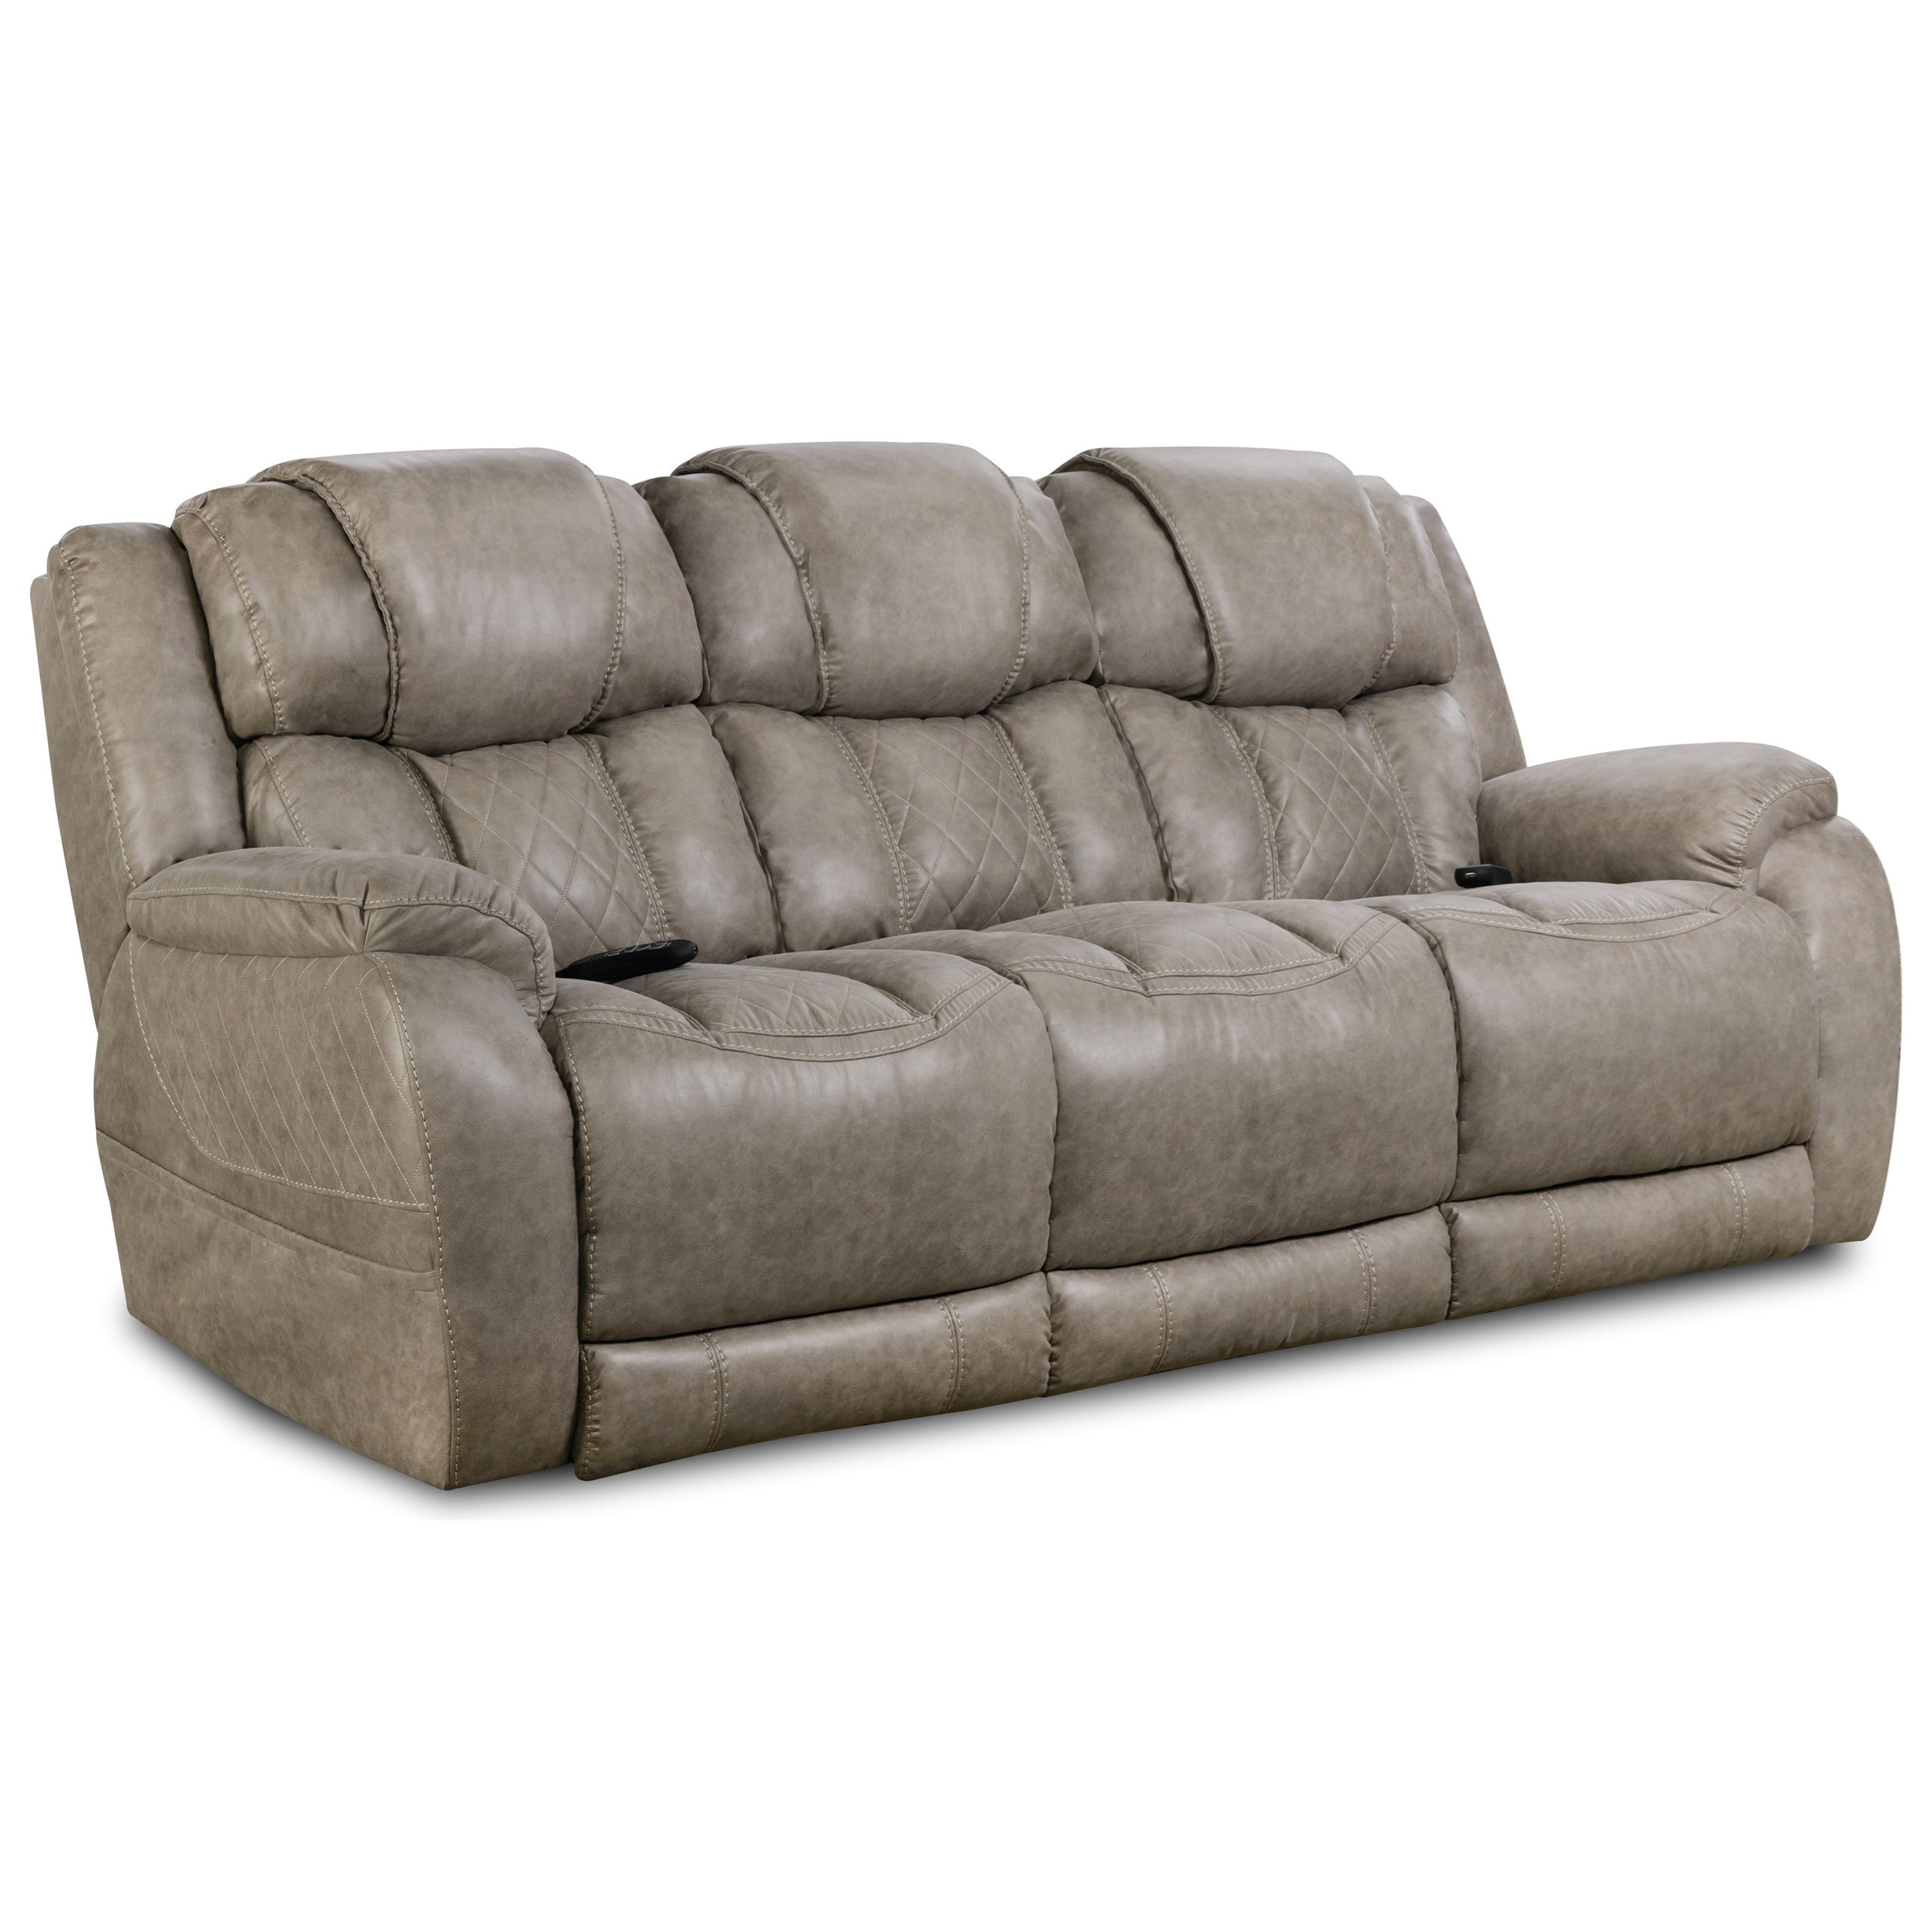 174 Double Reclining Power Sofa by HomeStretch at Suburban Furniture